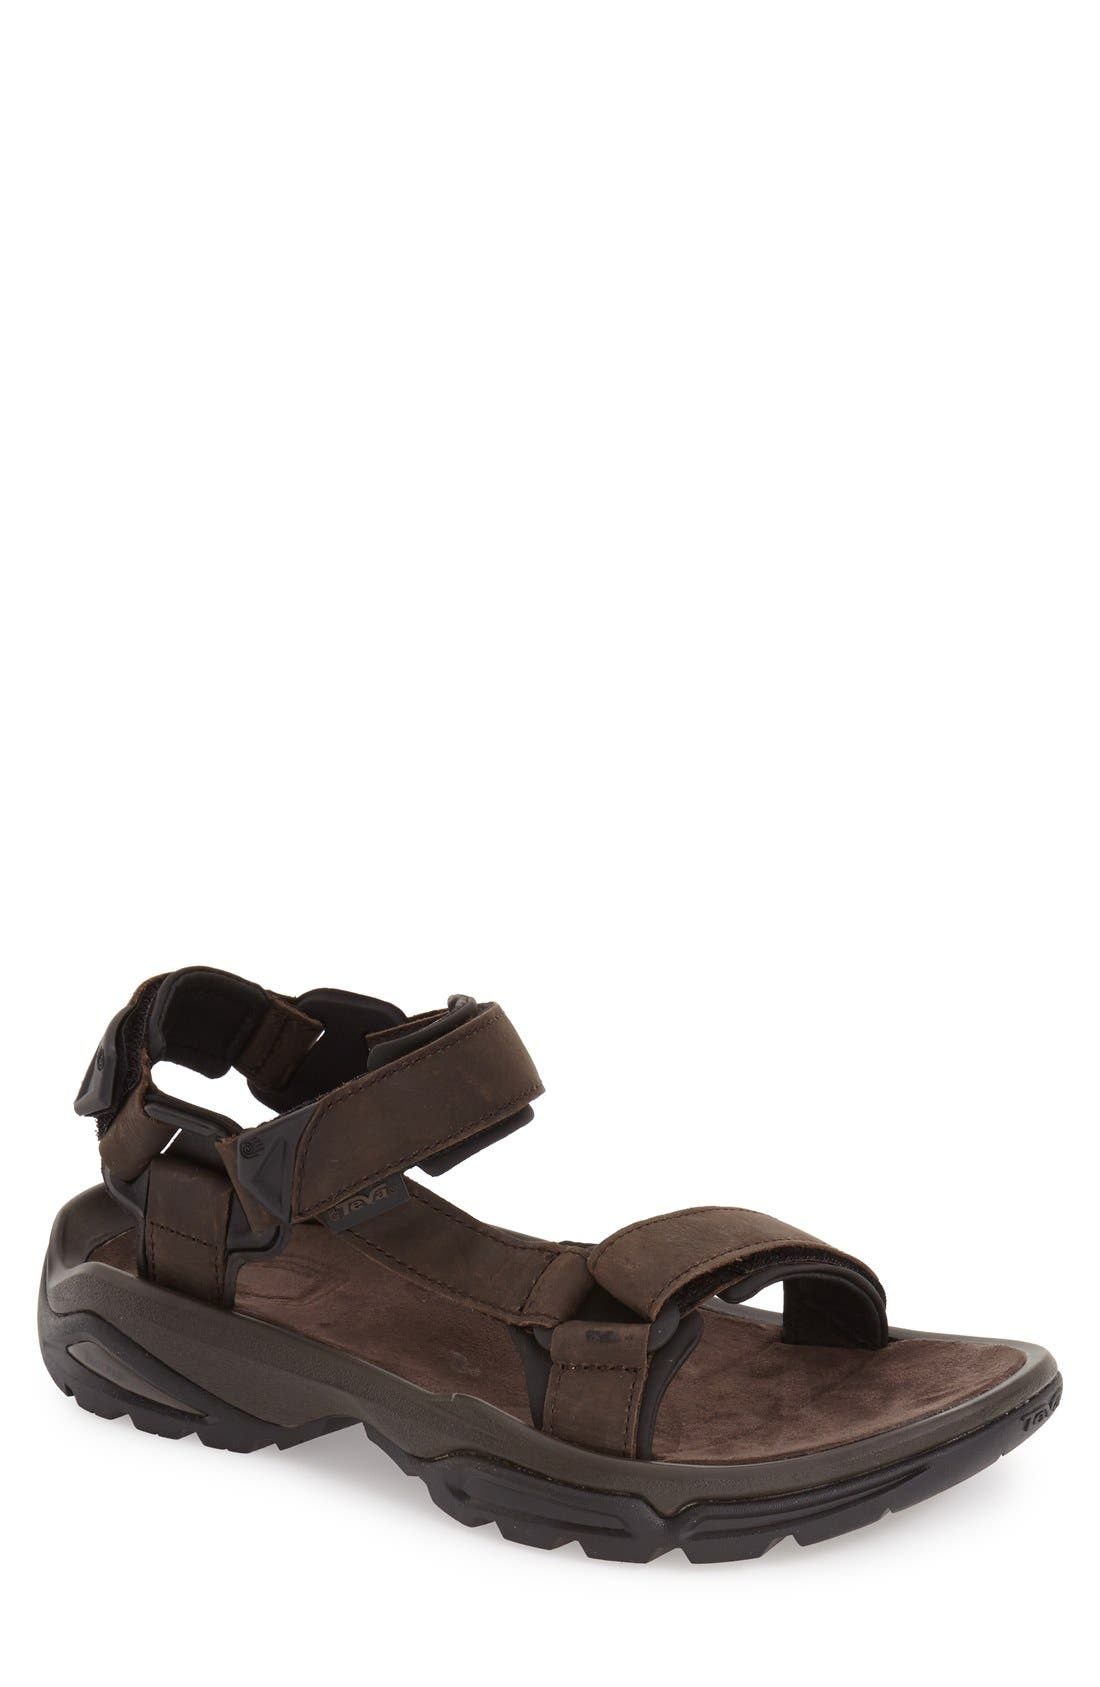 TEVA 'Terra Fi 4' Sport Sandal, Main, color, TURKISH COFFEE